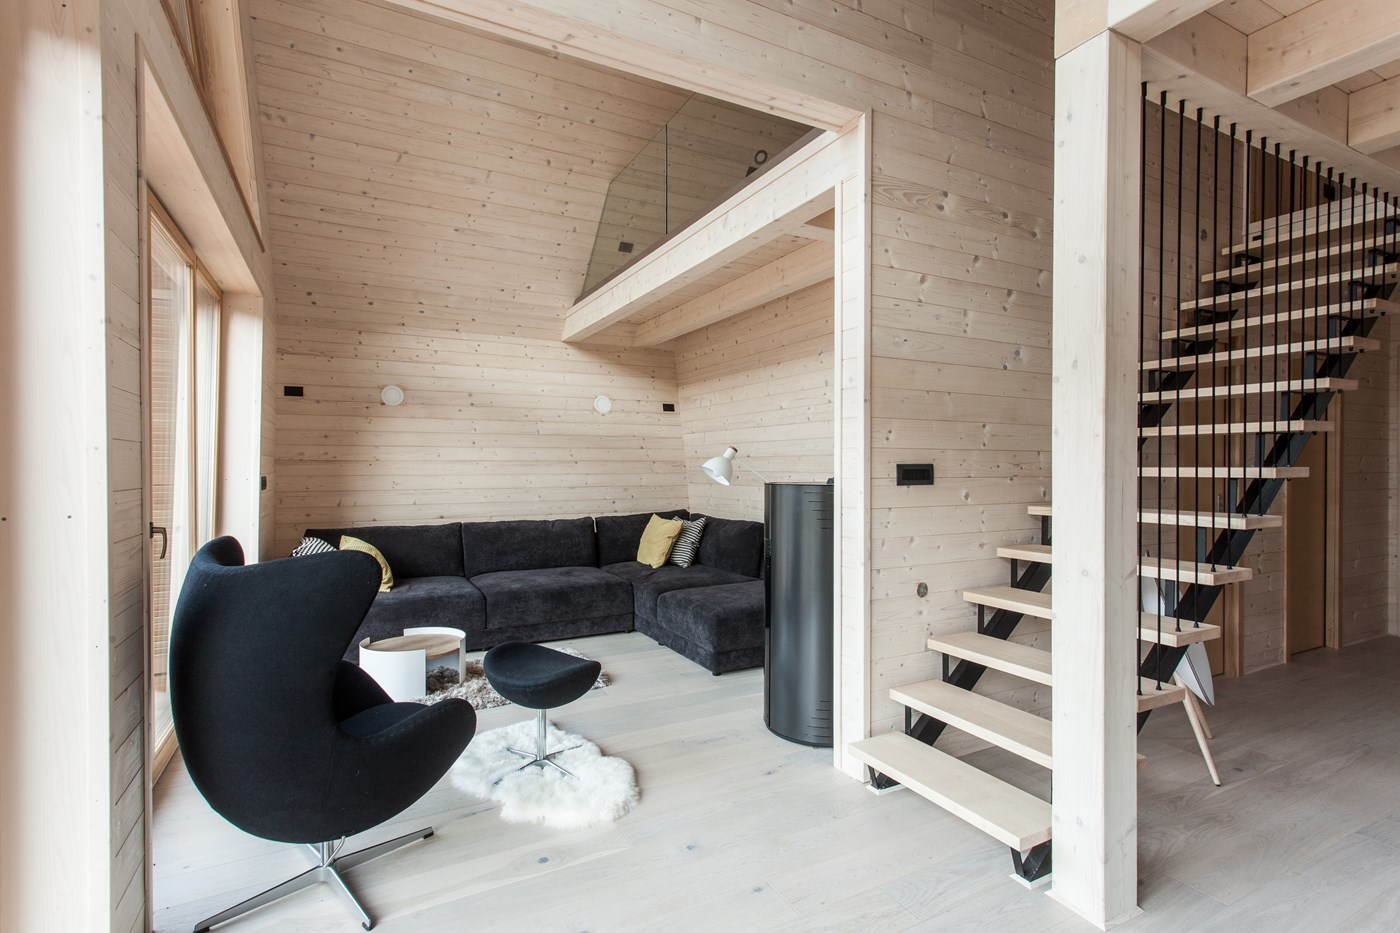 Wooden stairs, beam, wall and floor, living room